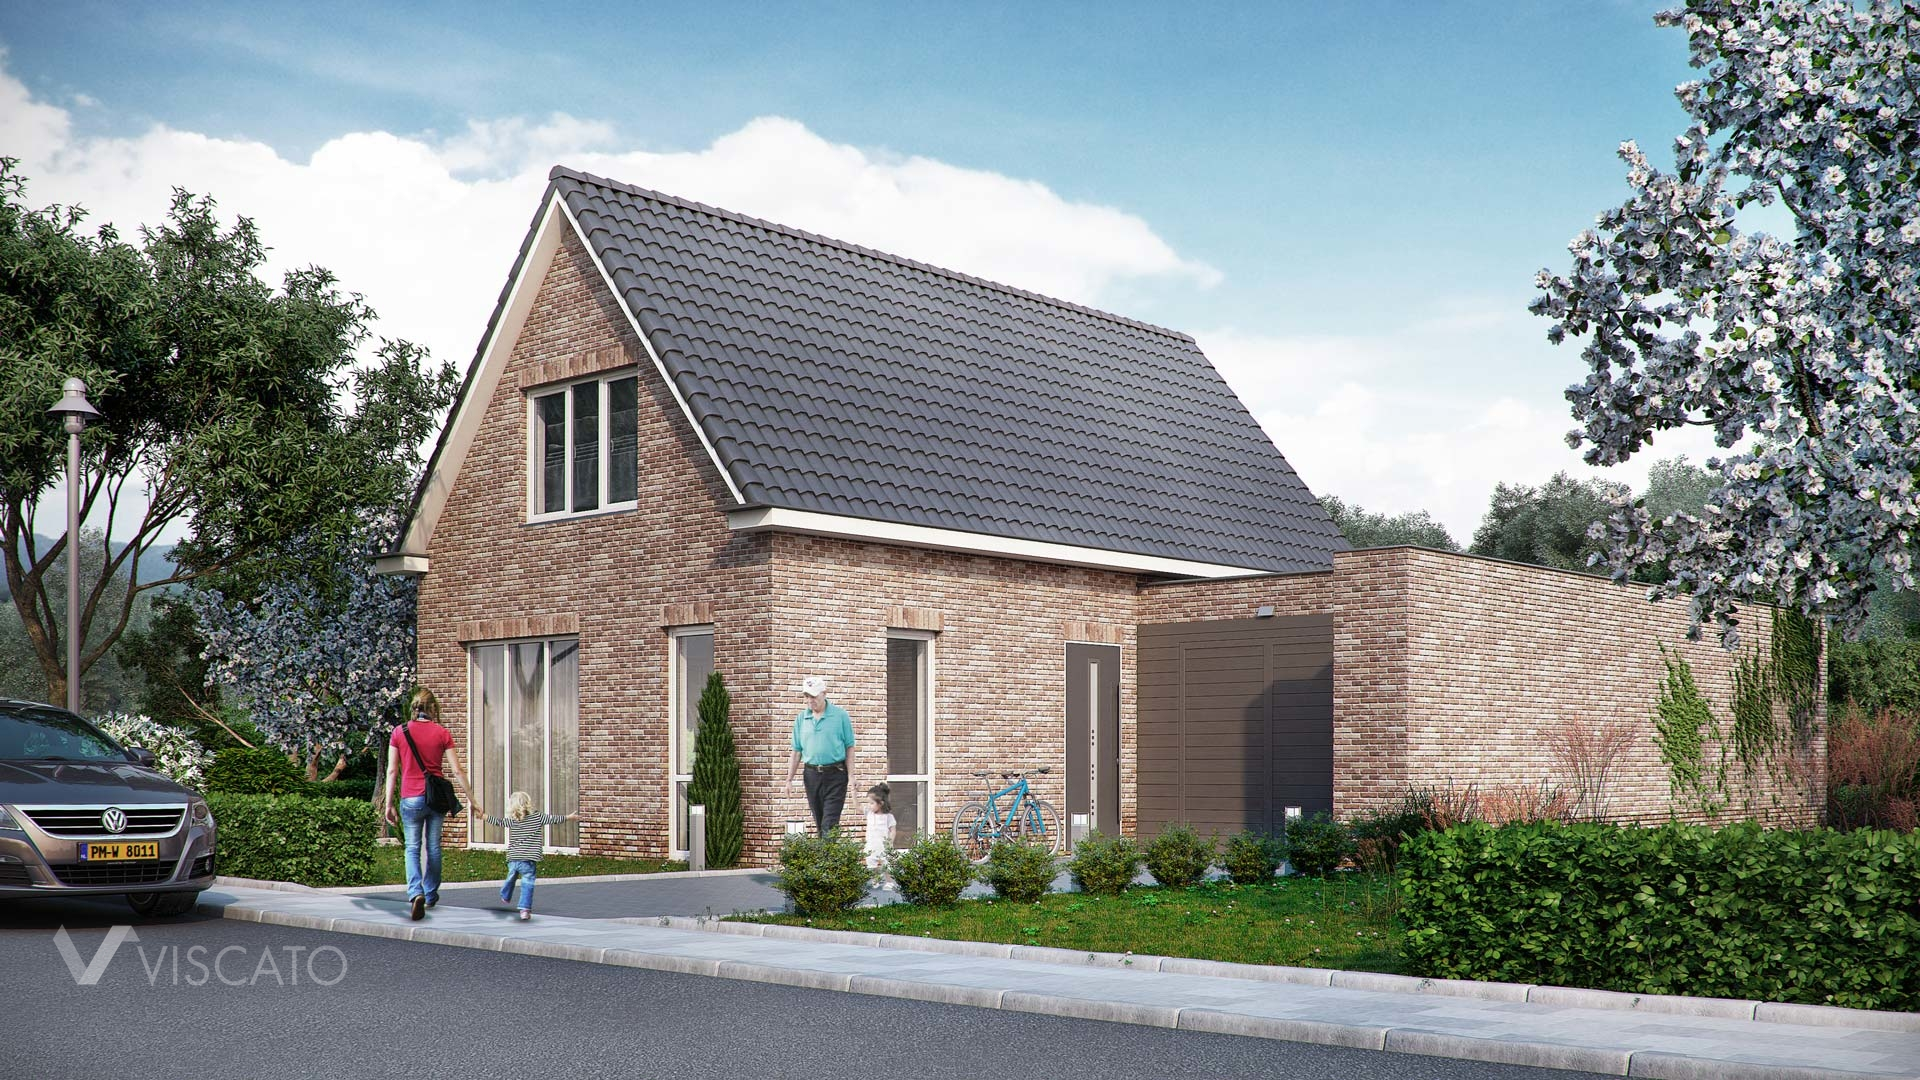 3d Visualization of brick house with garrage - street side